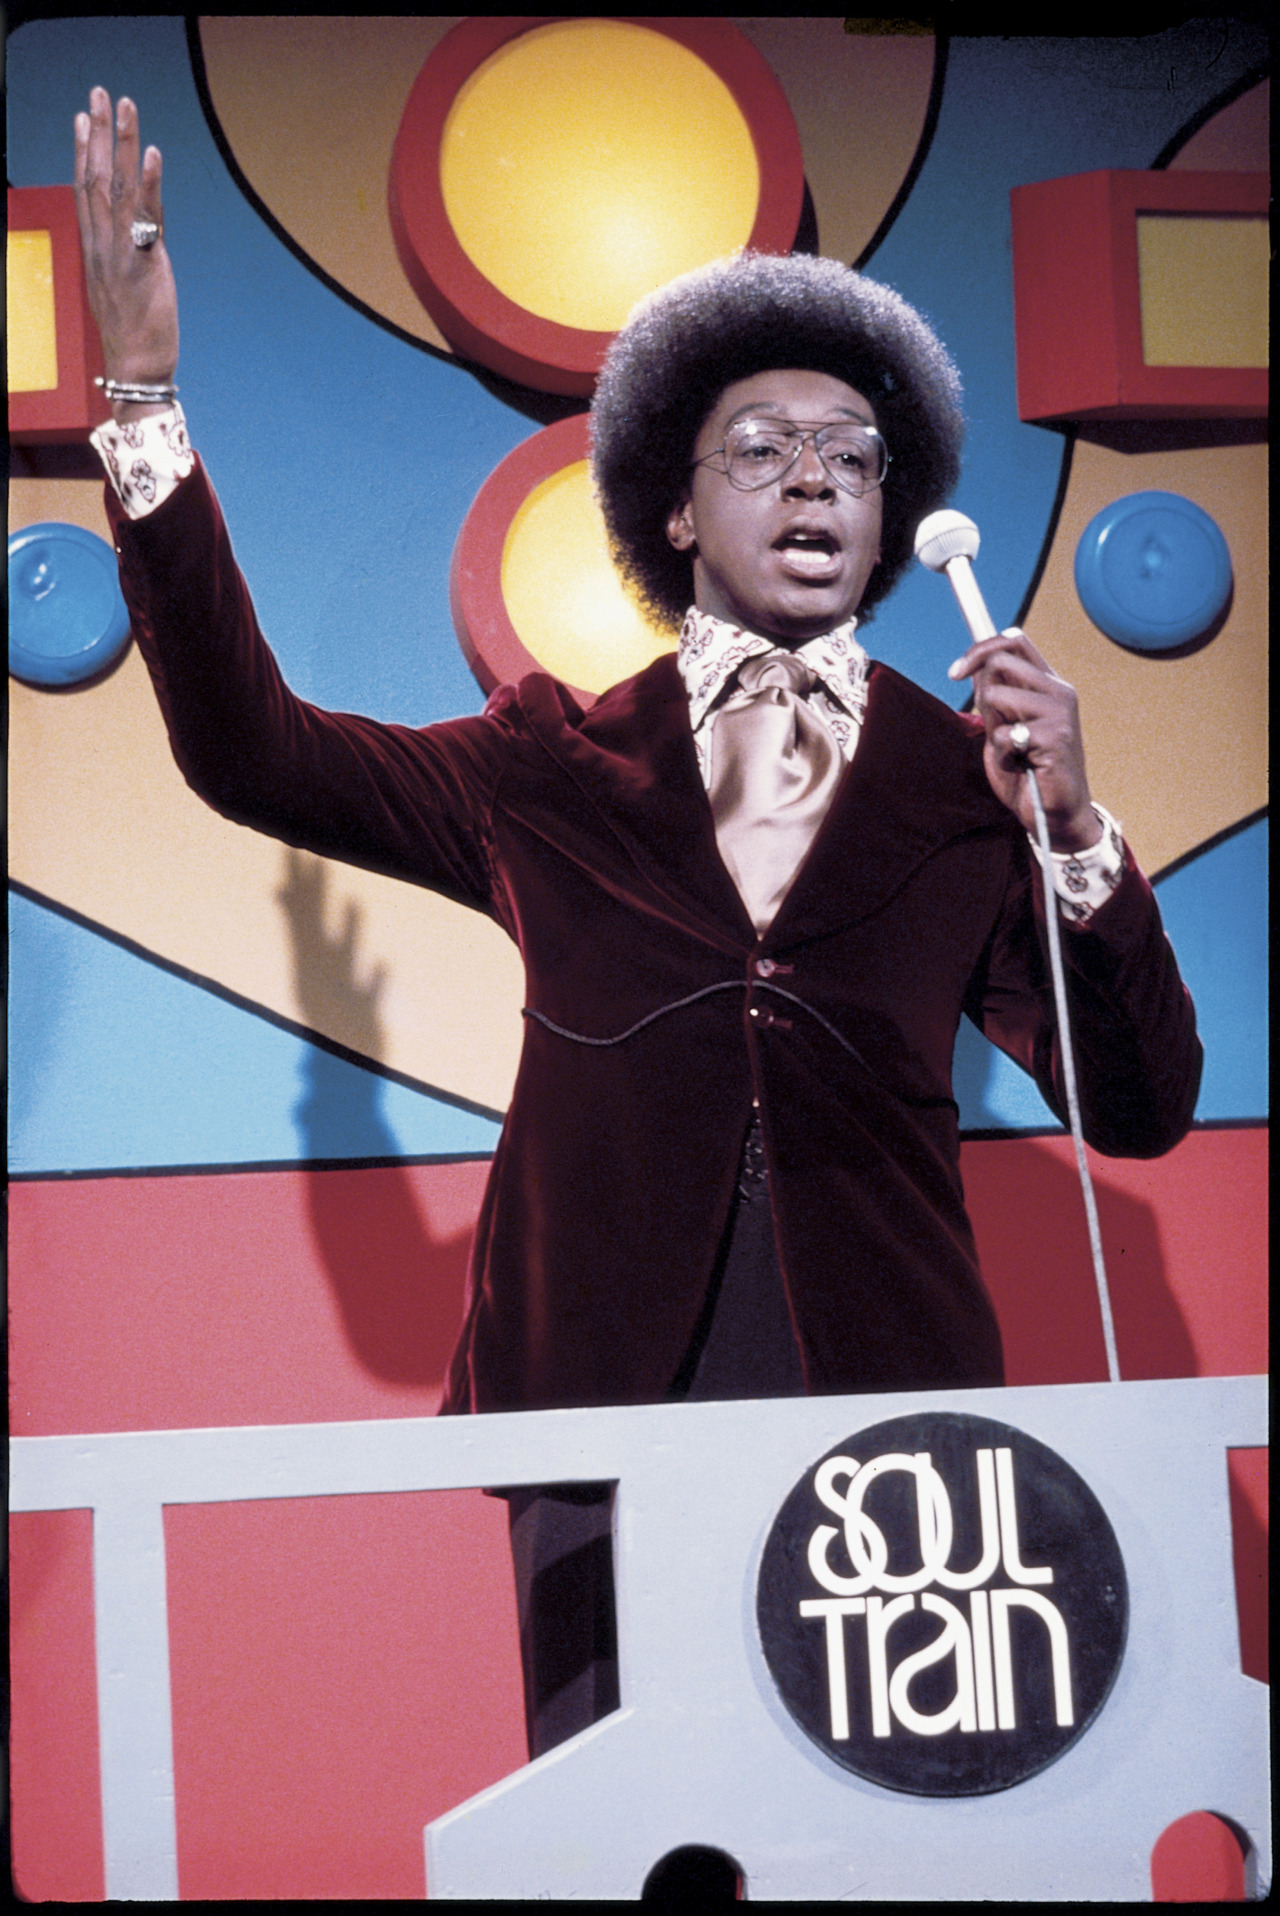 #RIP Don Cornelius #SOULTRAIN   your show spread music and dance all across america…  inspiring many including my teachers.